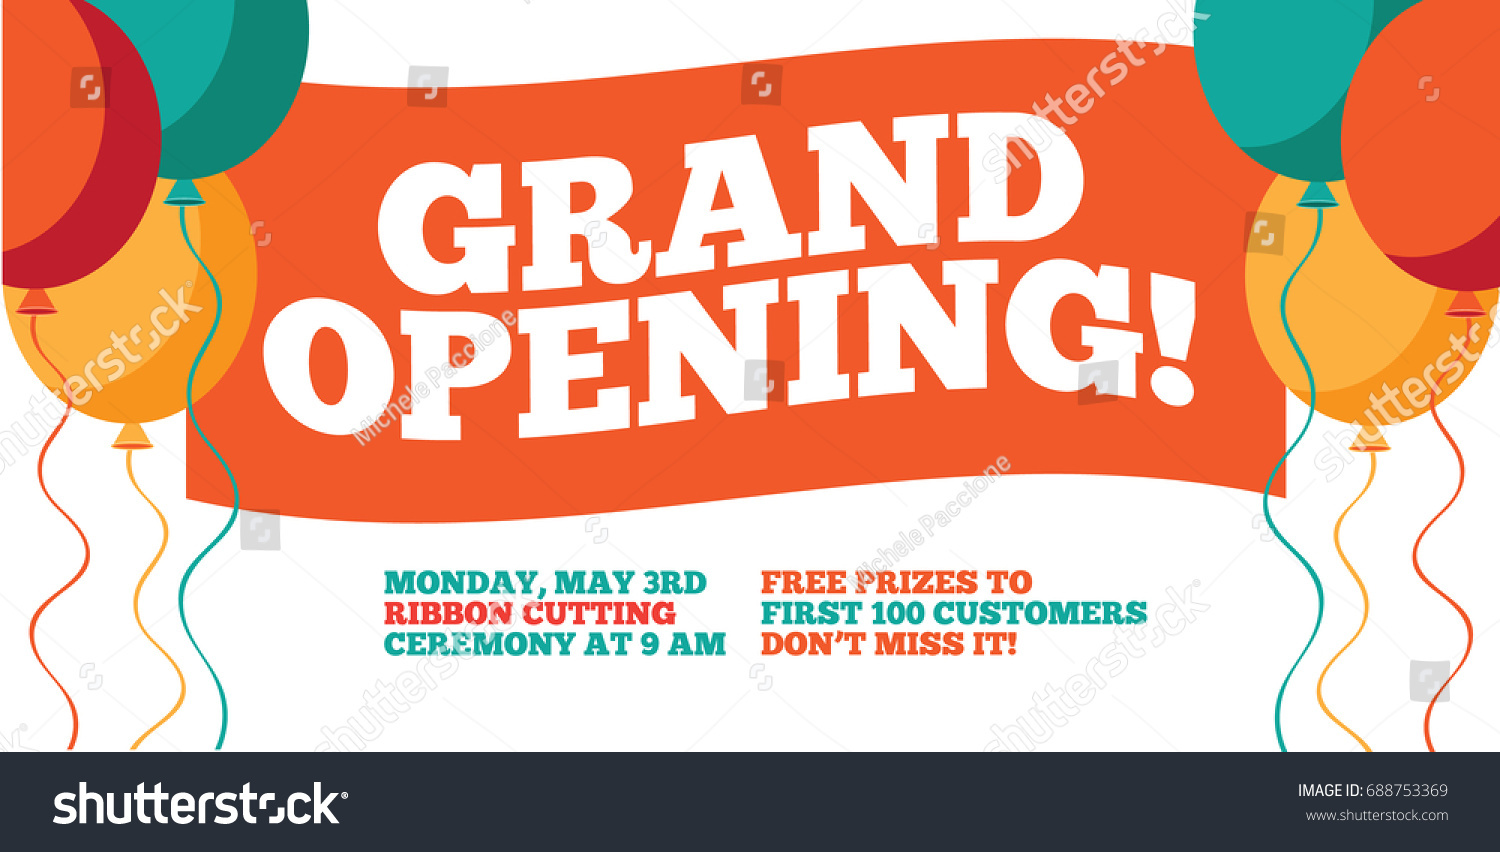 Grand Opening Flyer Marketing Banner Background Vector – Grand Opening Flyer Template